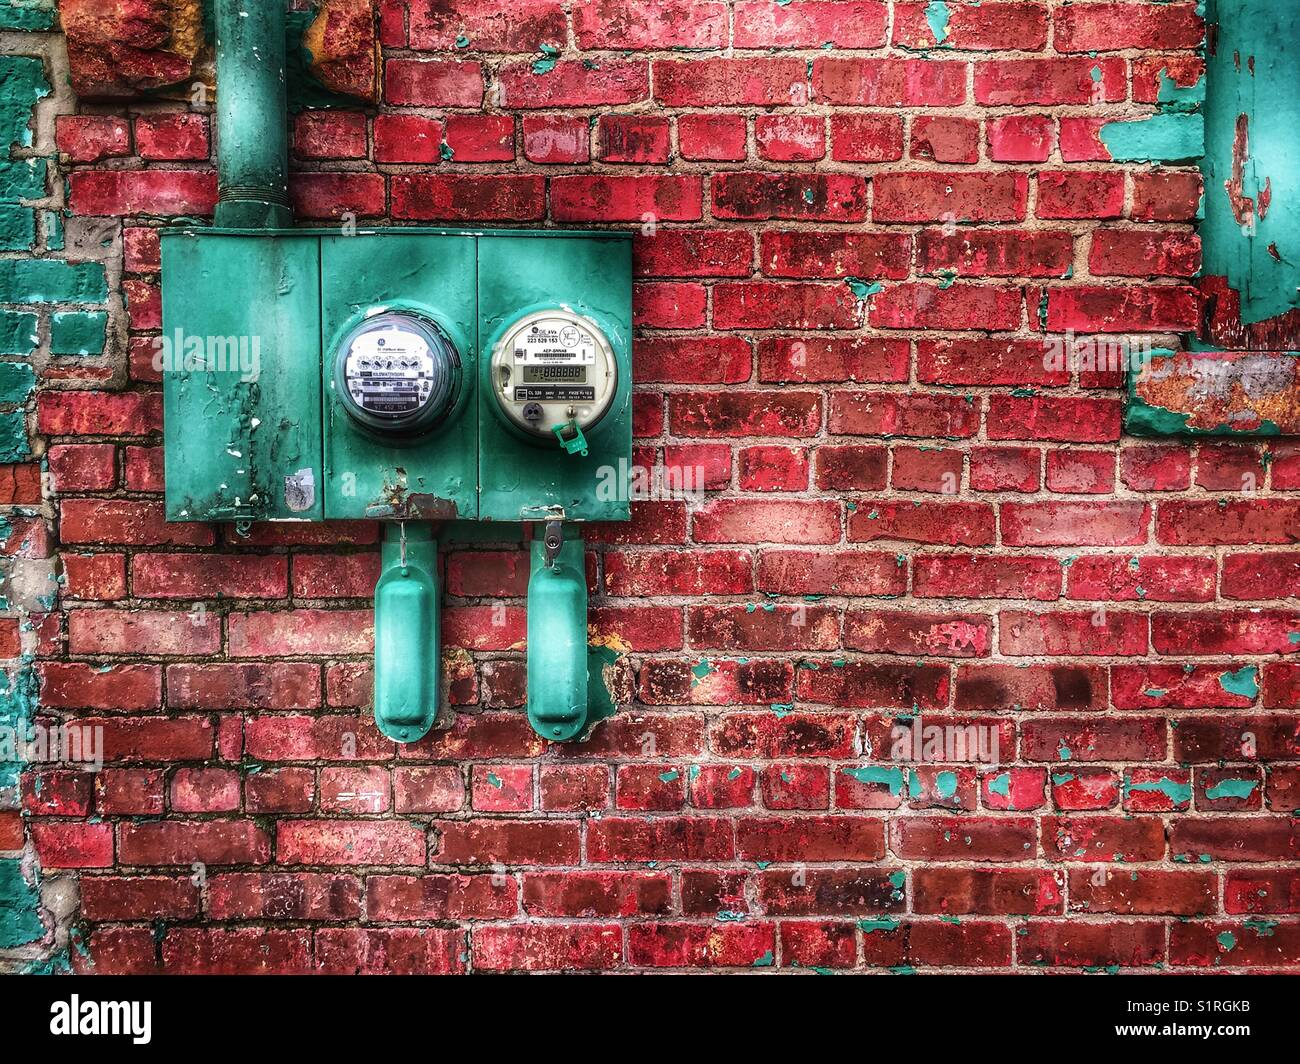 Red brick wall with electric meter - Stock Image